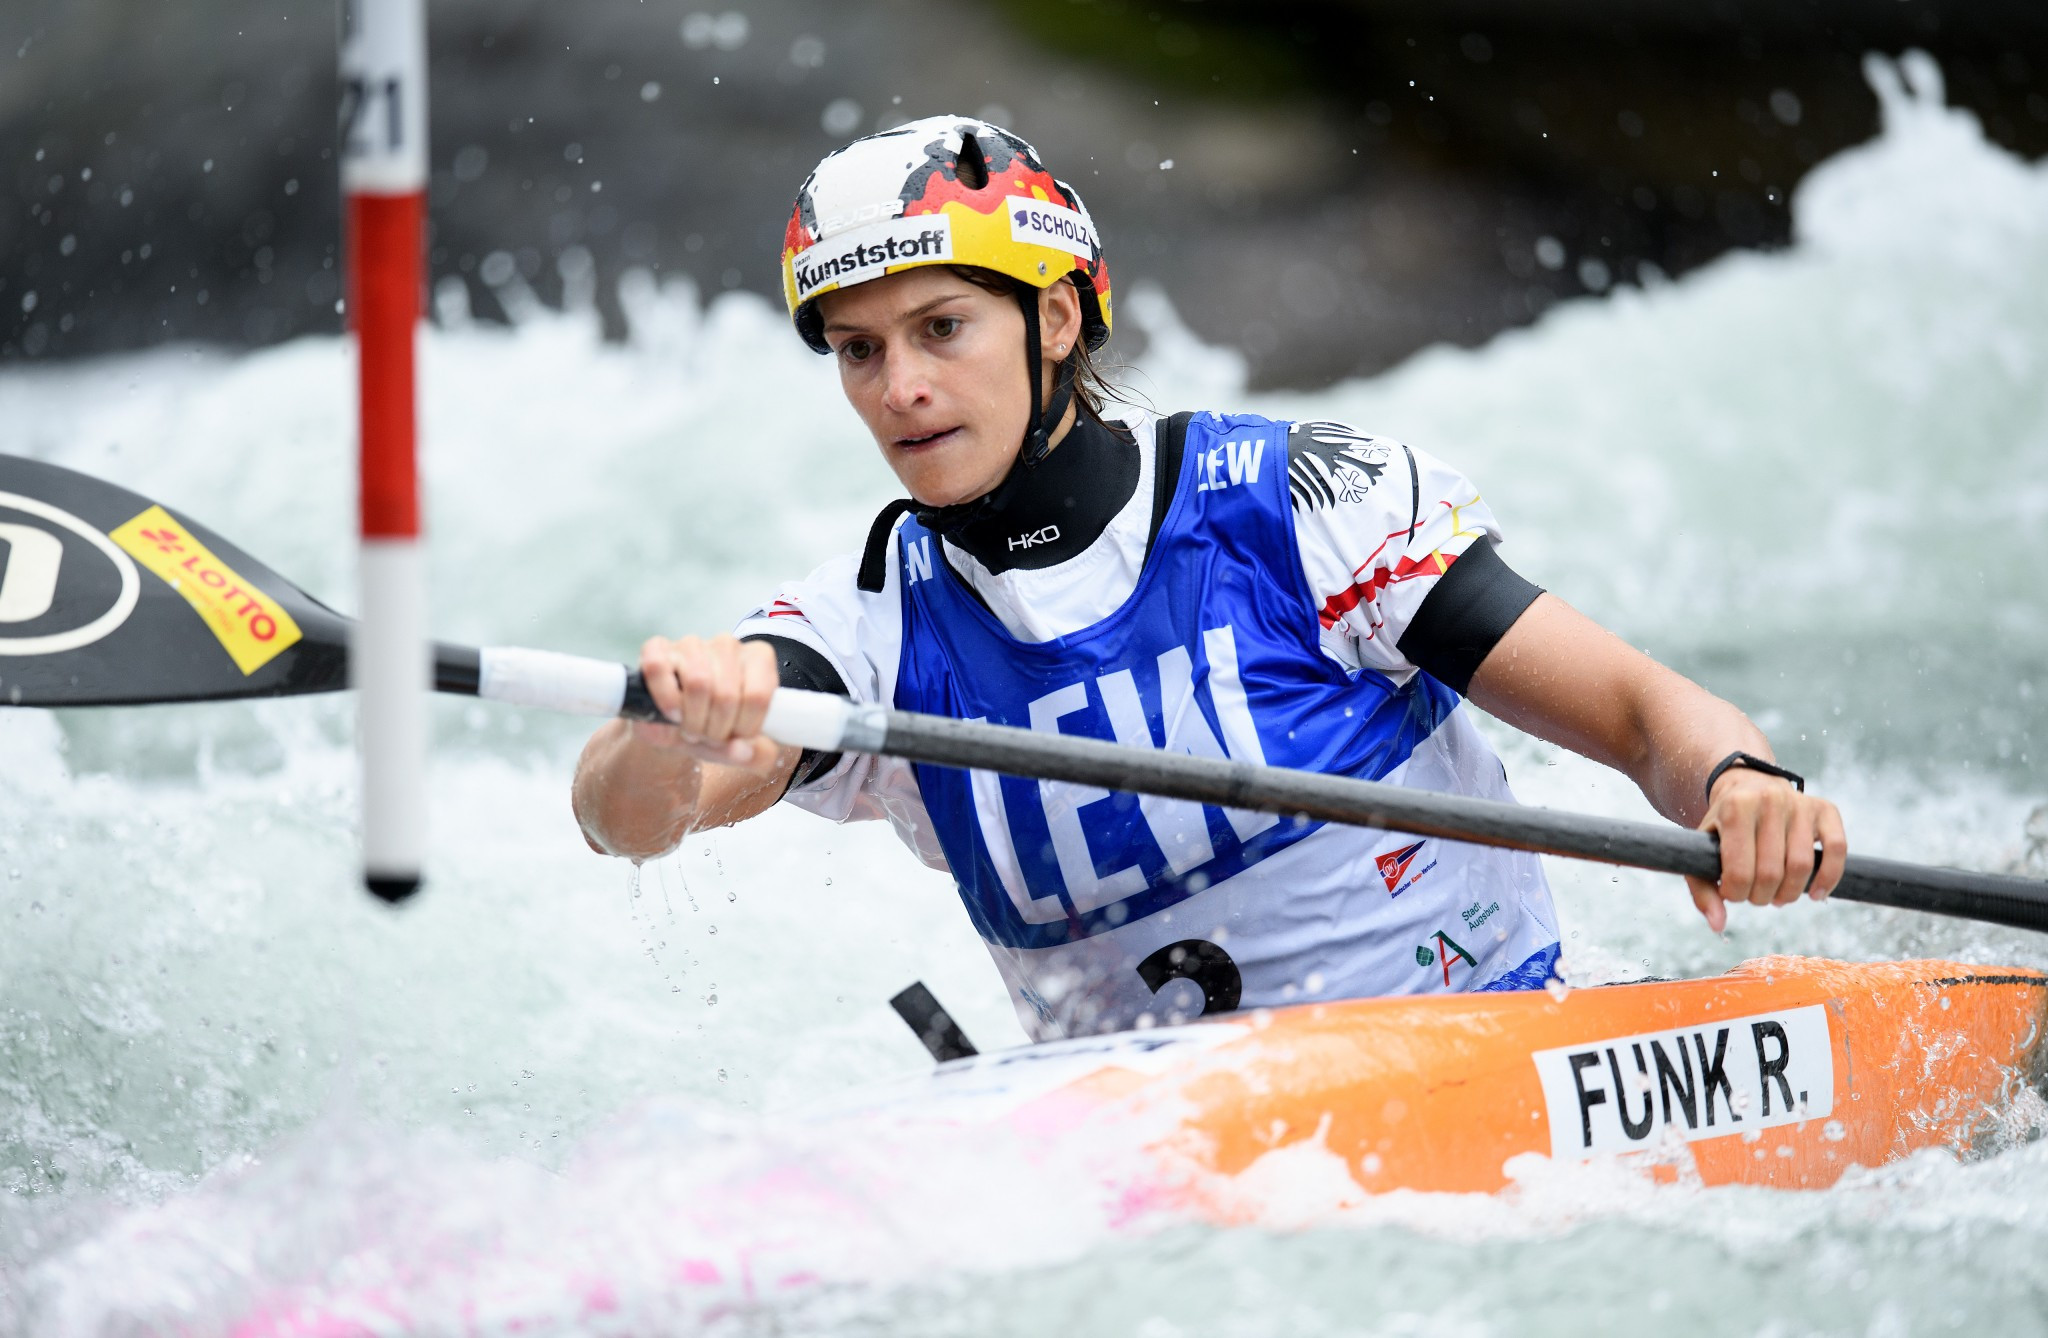 Germany's Ricarda Funk won the final K1 event of the season to clinch the overall Canoe Slalom World Cup title ©Getty Images